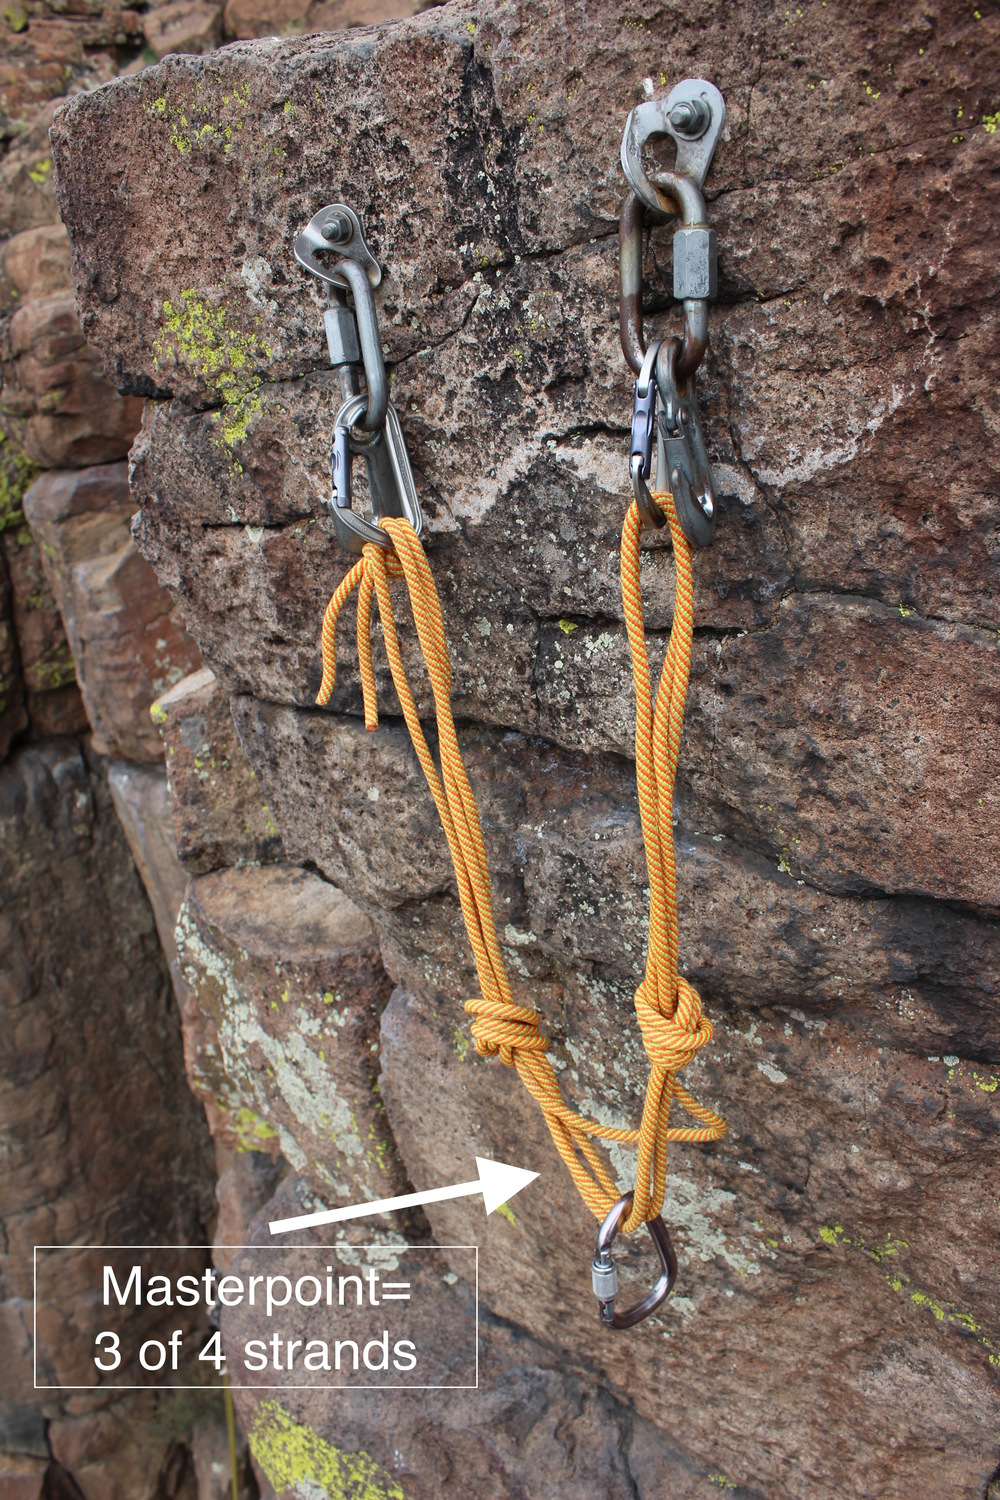 The quad is a self-adjusting anchor system, and it is commonly applied to anchors where the direction of load changes direction. The effective masterpoint uses three of the four strands in the nadir of anchors arc.  The fourth strand captures any carabiners or connections if one of the components were to fail.